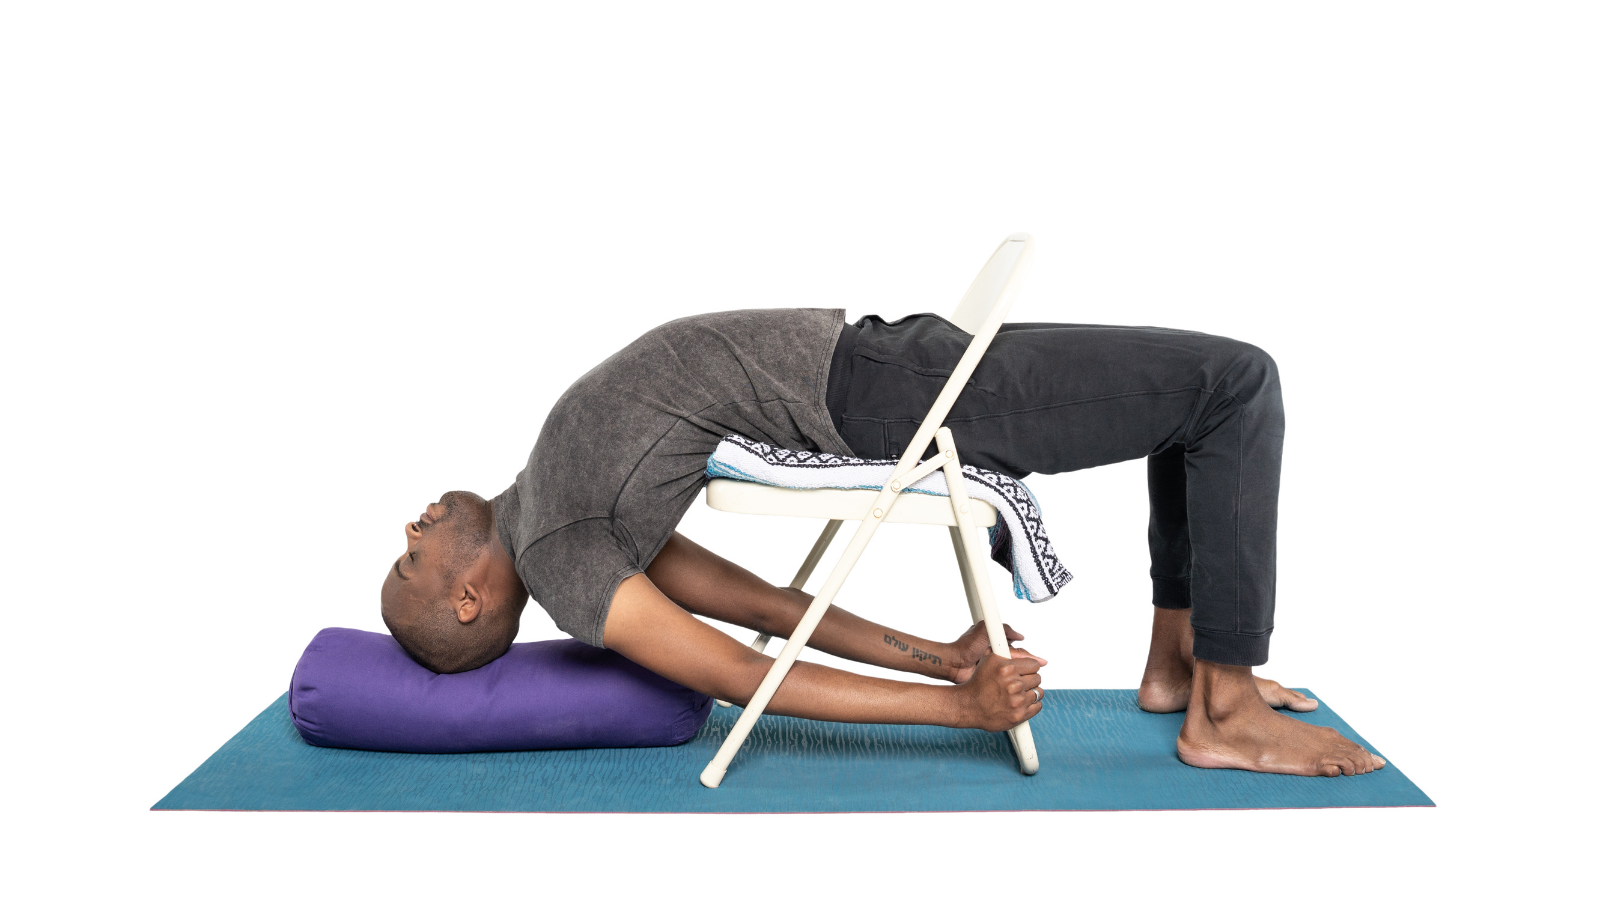 How to practice yoga poses like Bridge Pose (Setu Bandha Sarvangasana) with creative and mindful use of props